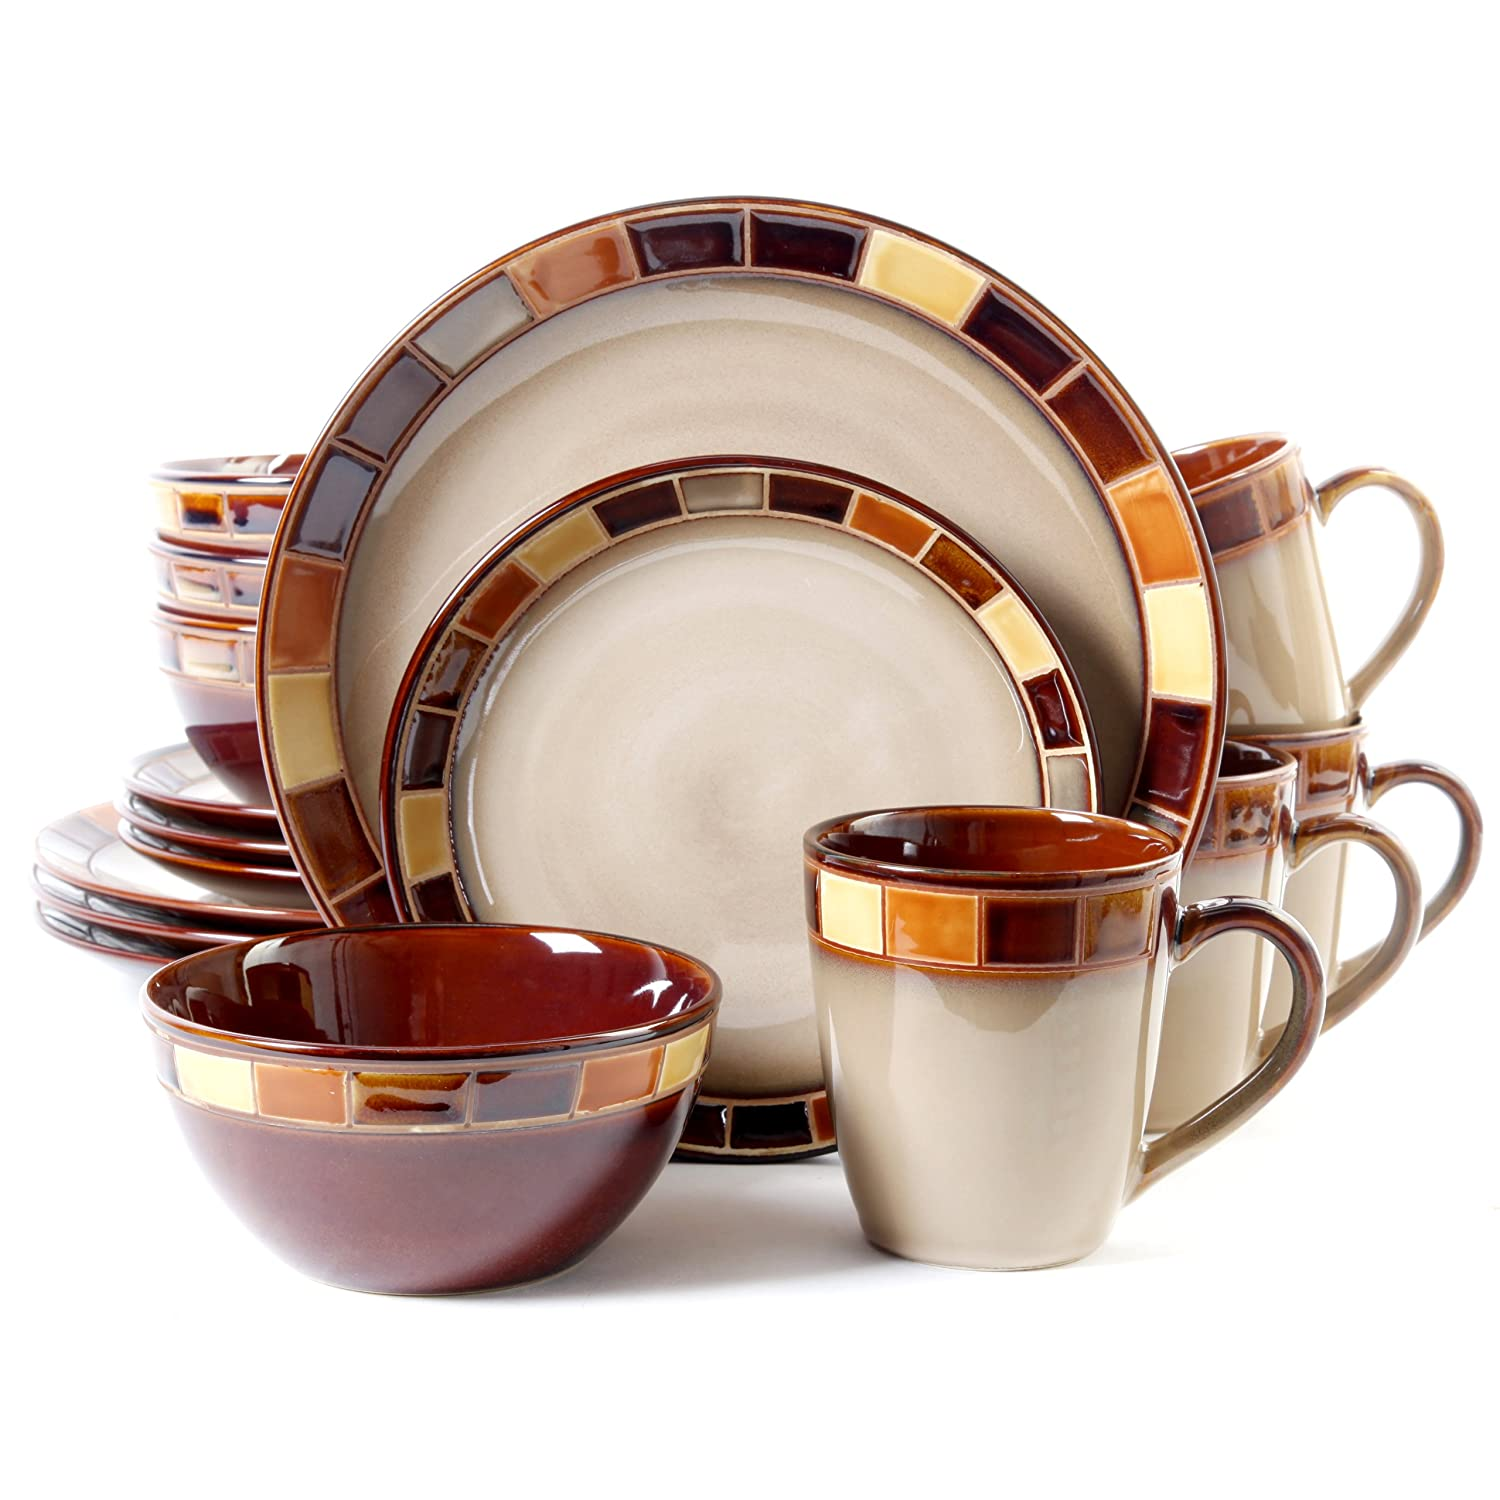 Gibson Casa Estebana 16-piece Dinnerware Set Service for 4 Beige and Brown  sc 1 st  Amazon.com & Amazon.com: Dinnerware Sets: Home \u0026 Kitchen